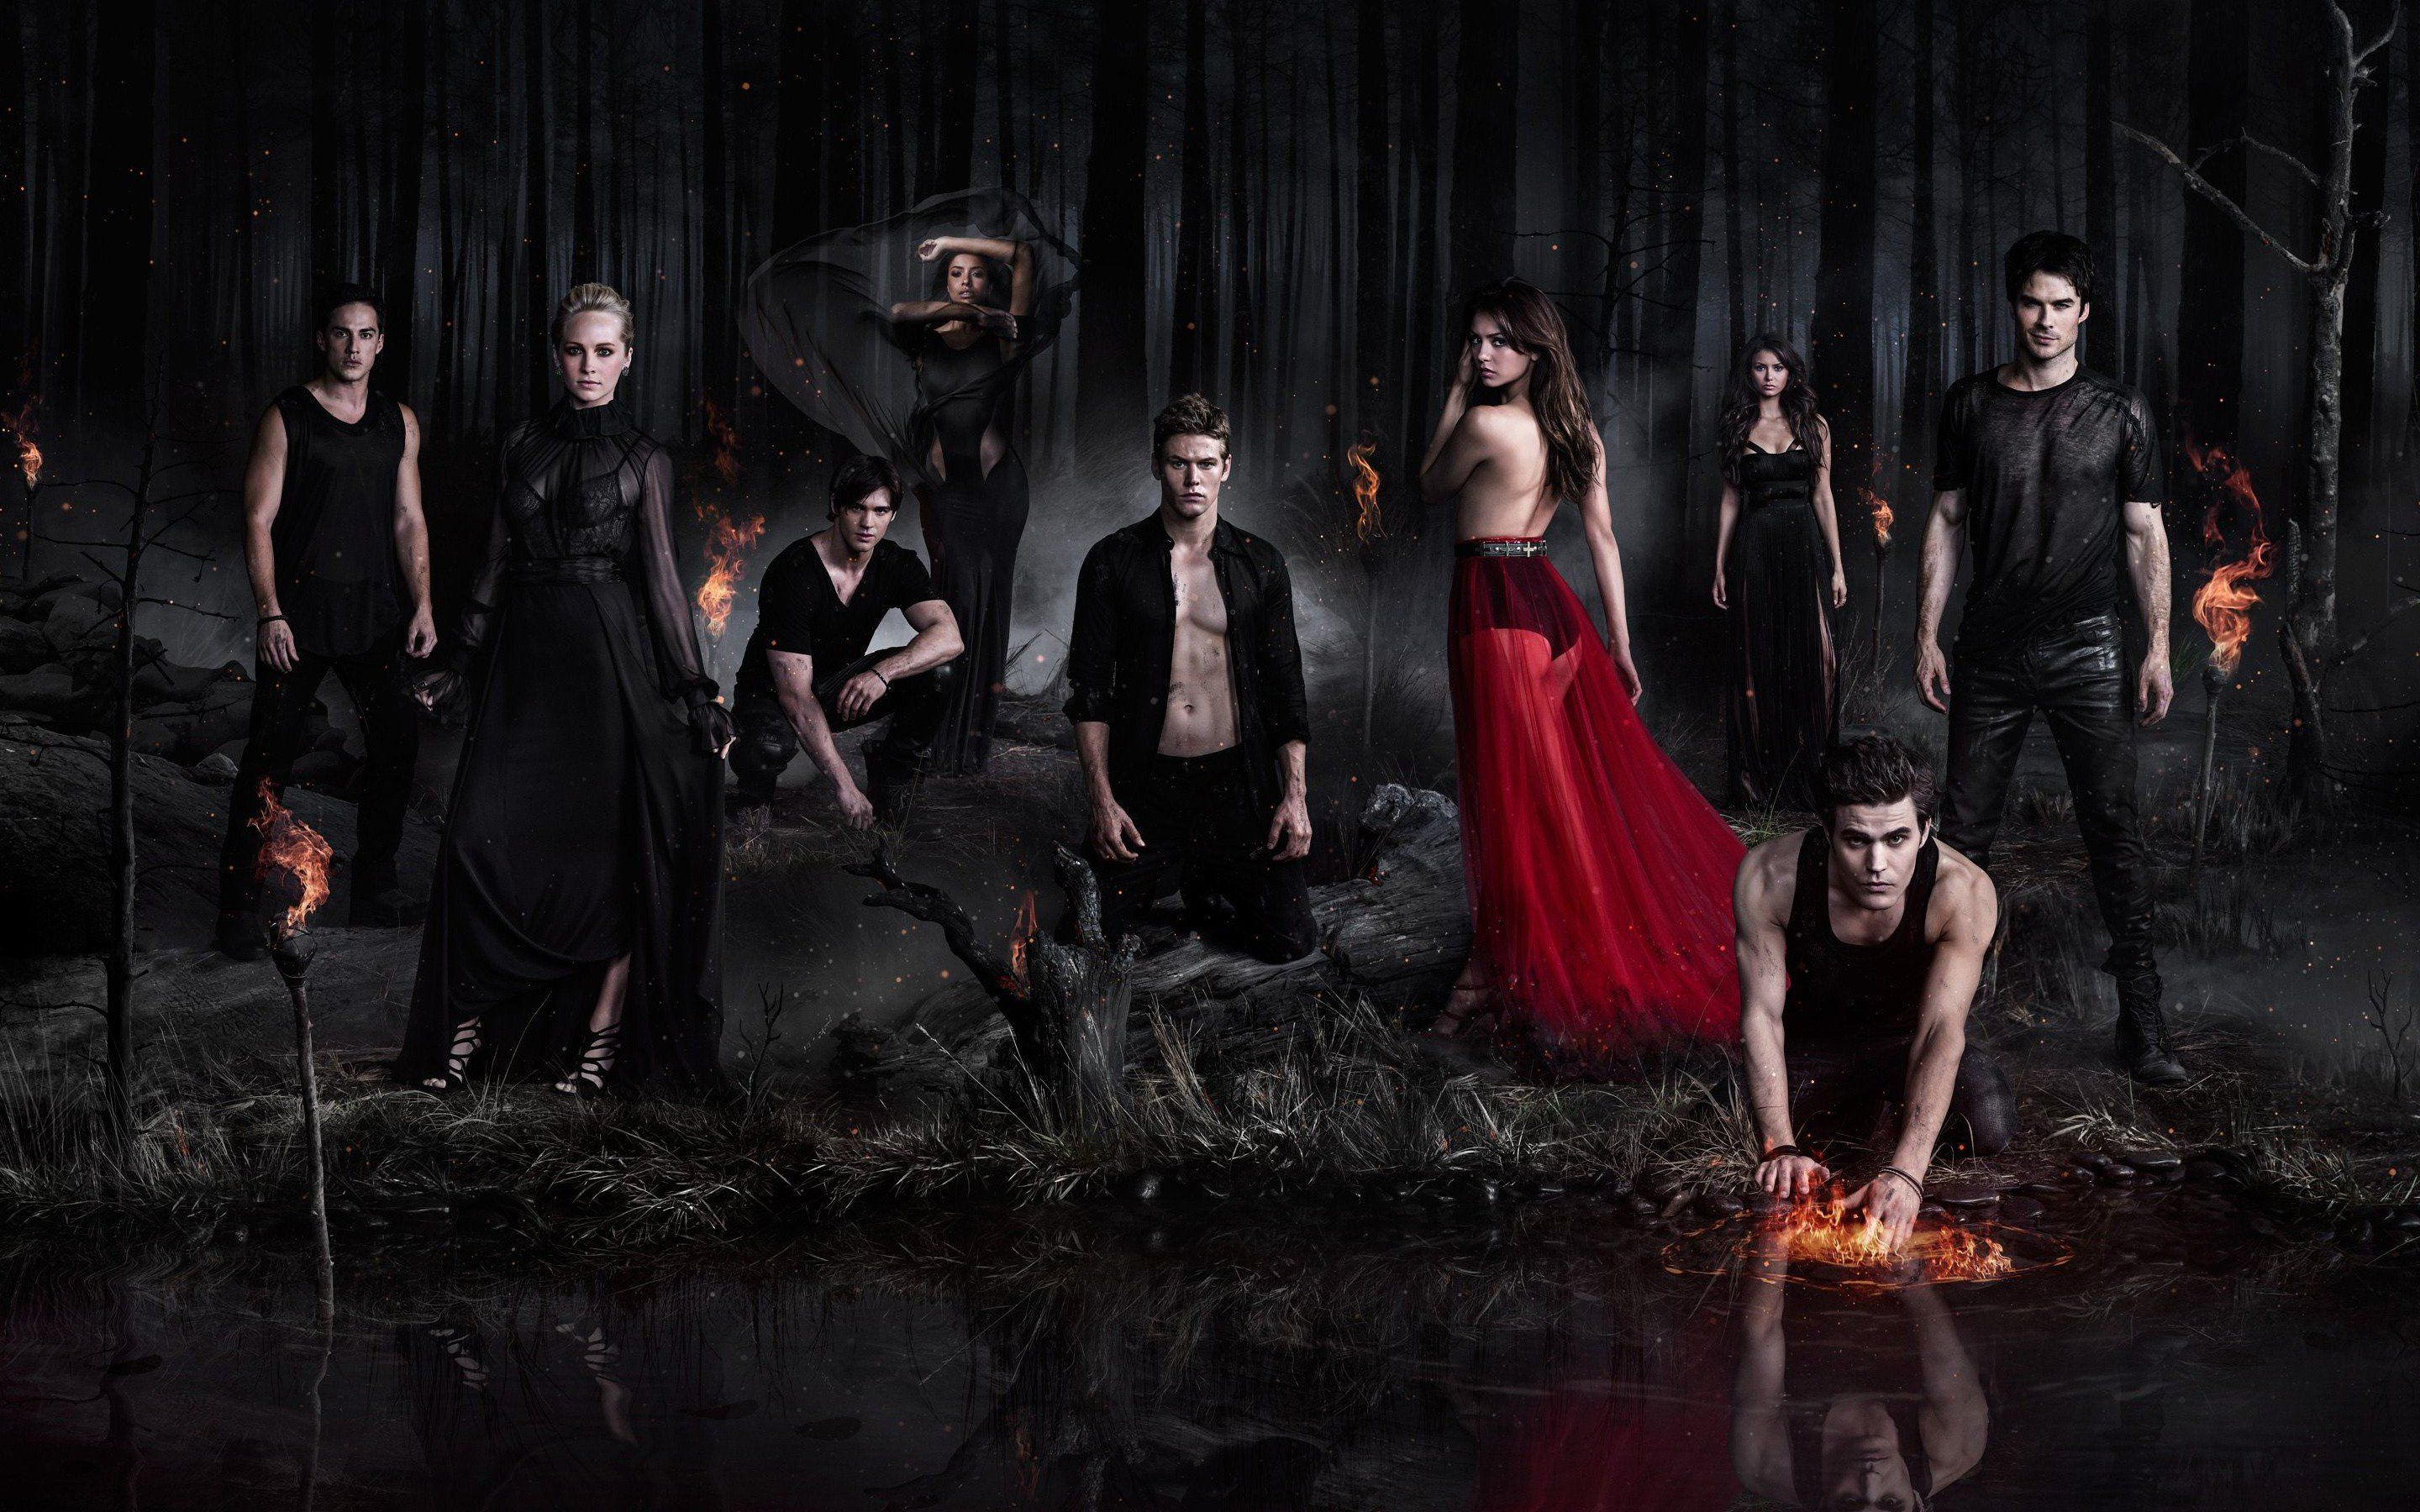 The Vampire Diaries Wallpapers, Images, Backgrounds, Photos and ...